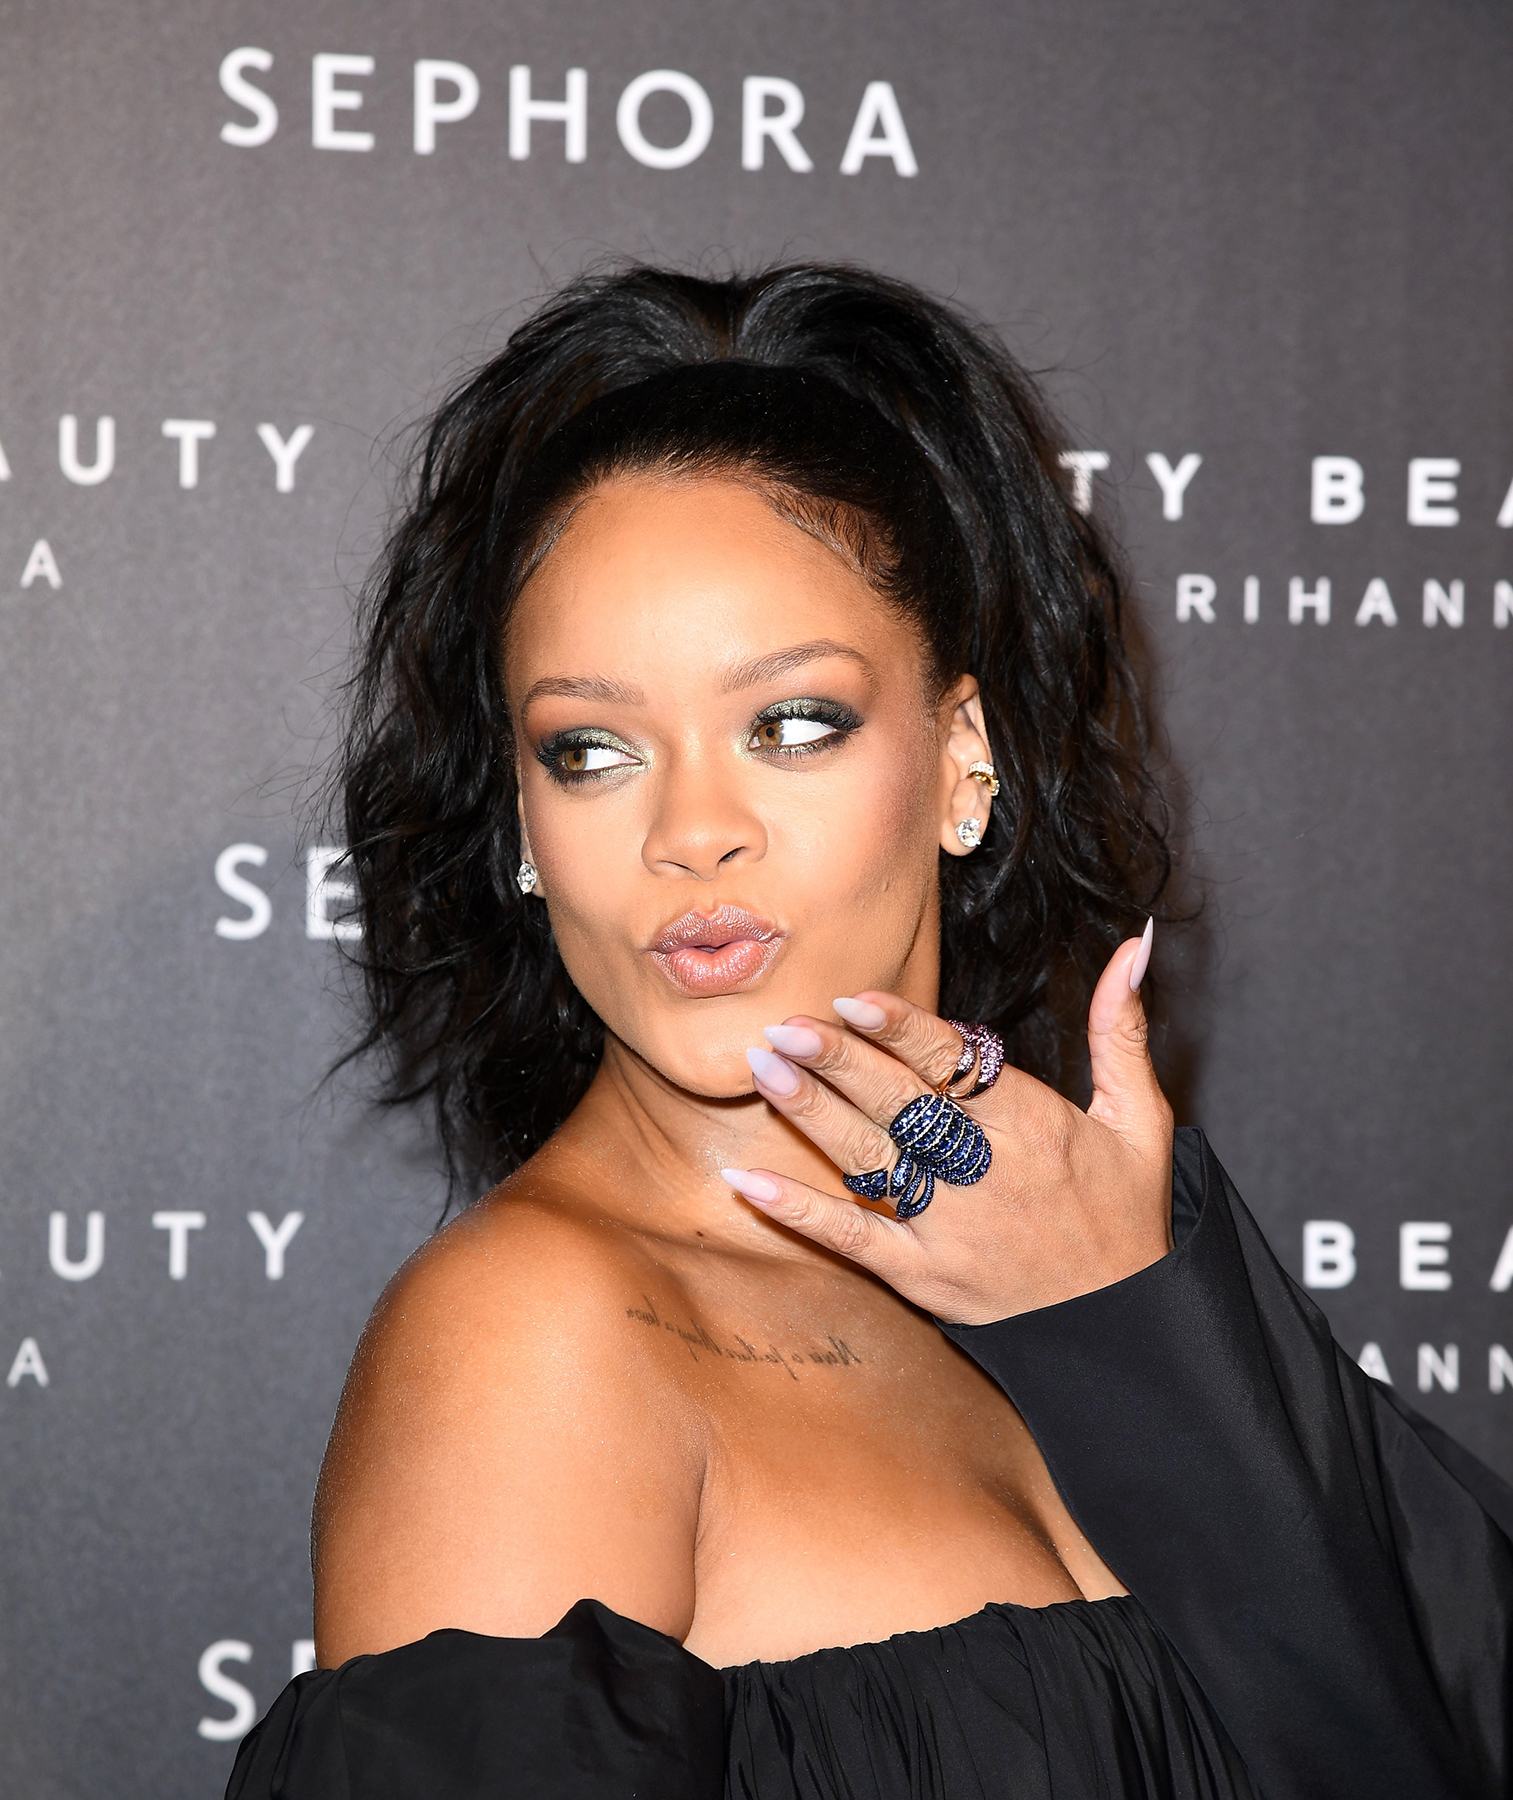 You Won't Believe What Rihanna Is Coming Out With Next